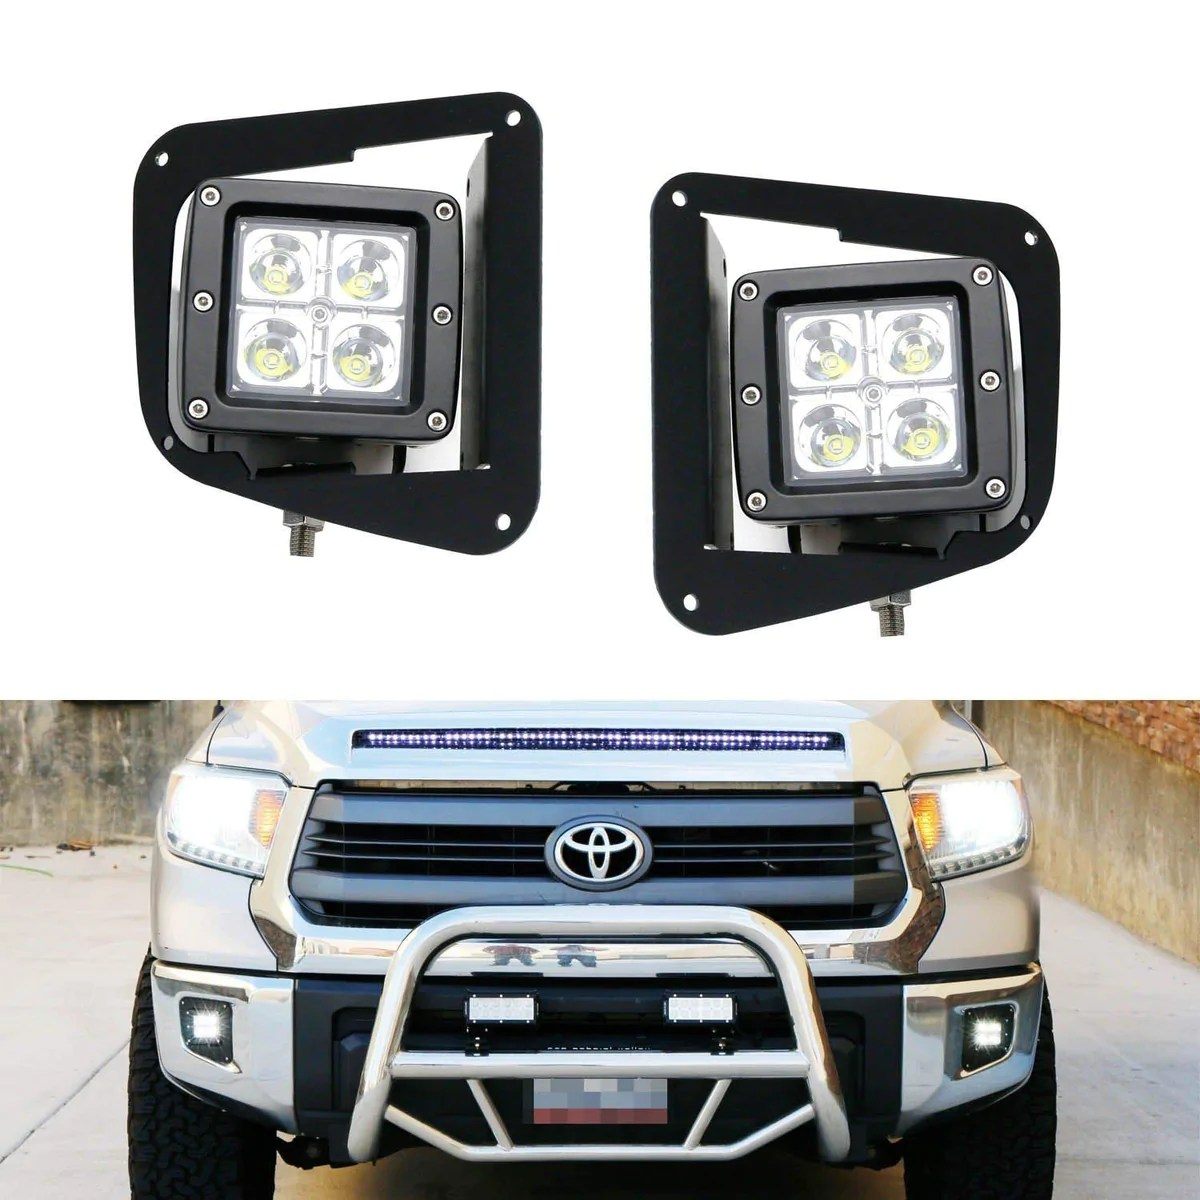 small resolution of led pod light fog lamp kit for 2014 up toyota tundra includes 2 20w high power cree led cubes foglight bezel covers mounting brackets wiring adapter